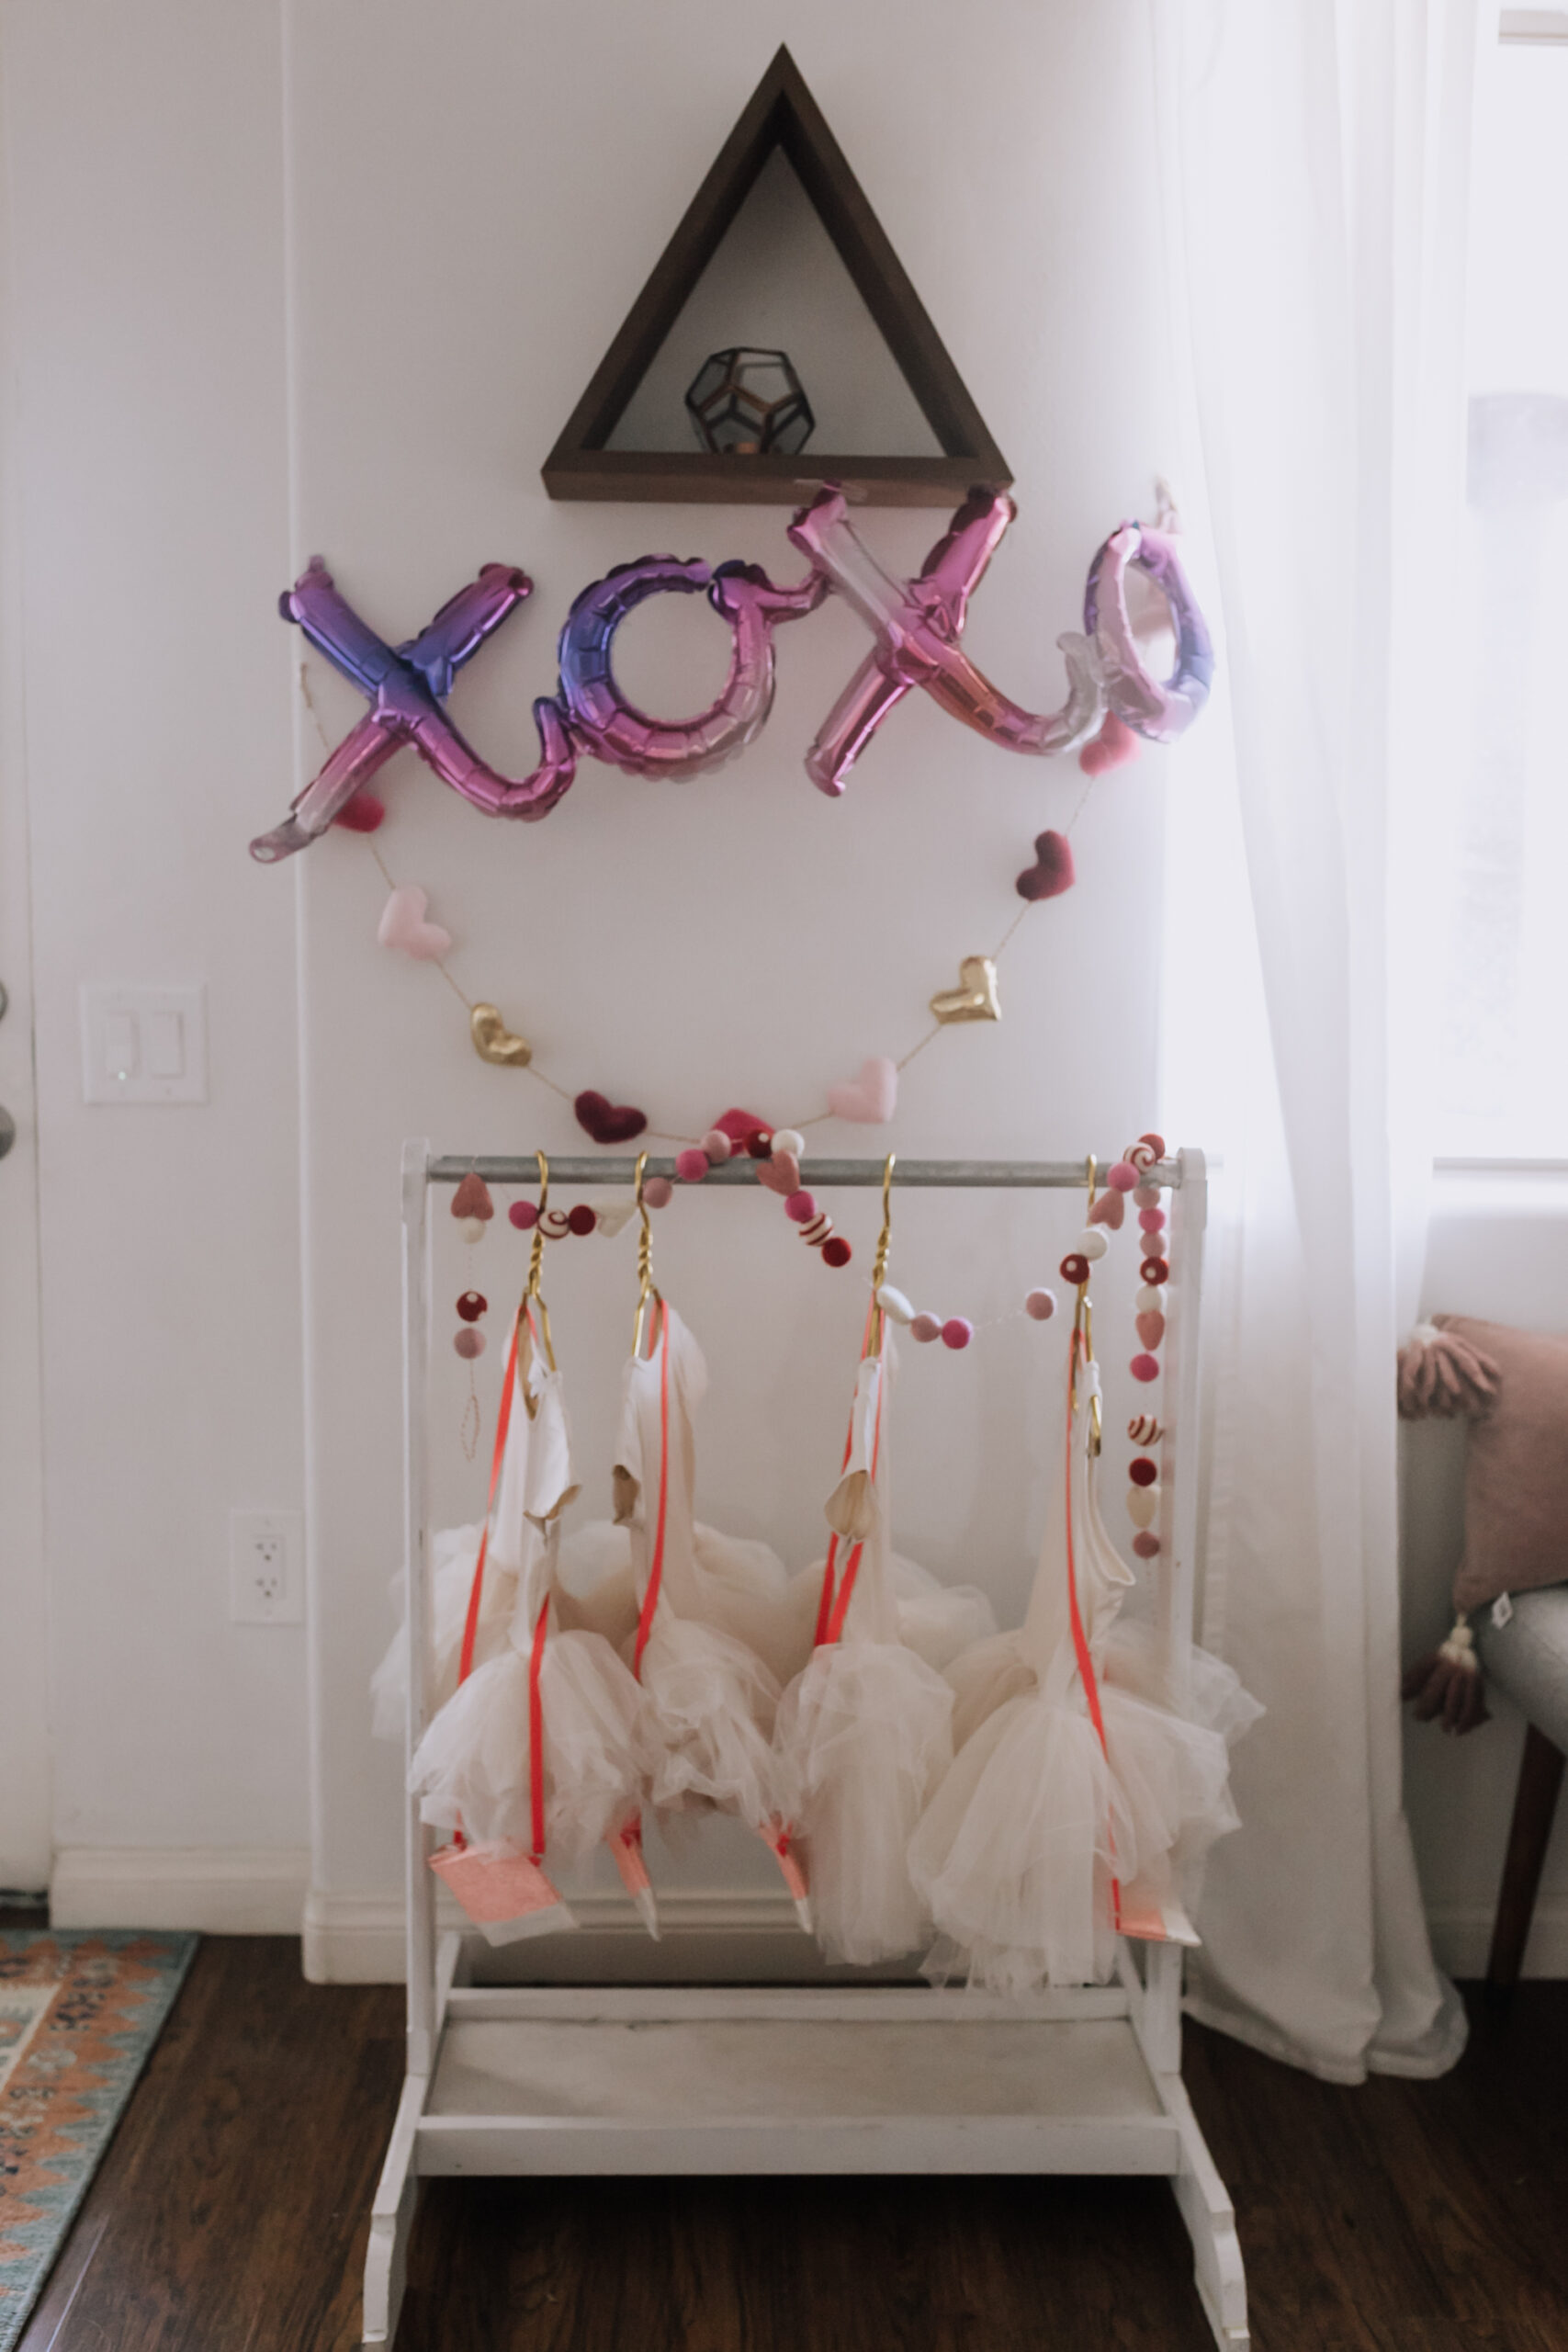 sweetest little valentine's dress up rack from Plum NYC. #tutus #valetinesplaydate #galentines